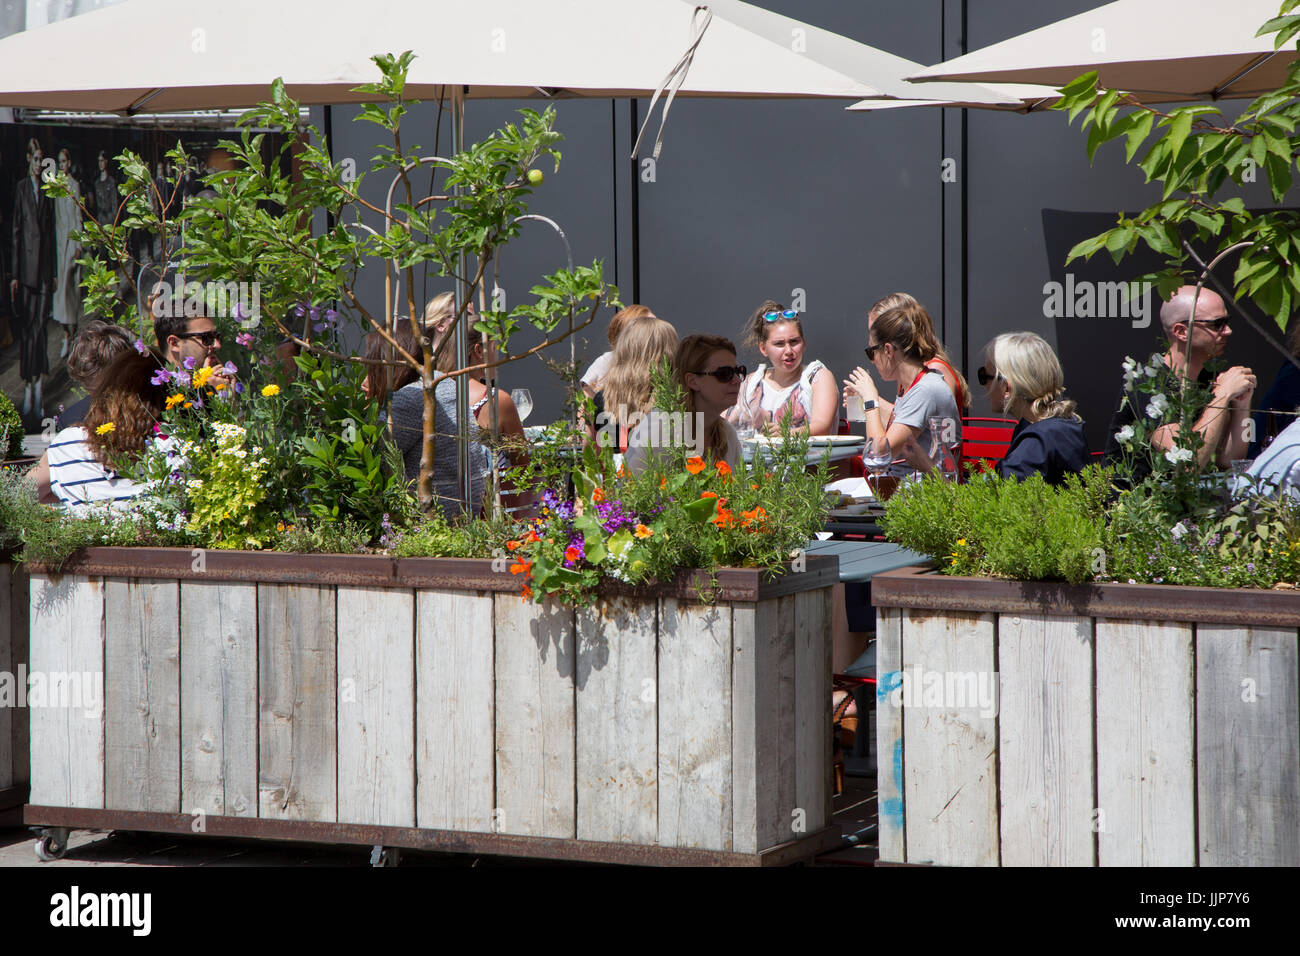 Grain Store, a restaurant in Granary Square King's Cross. Diners are eating al fresco in the garden outside - Stock Image